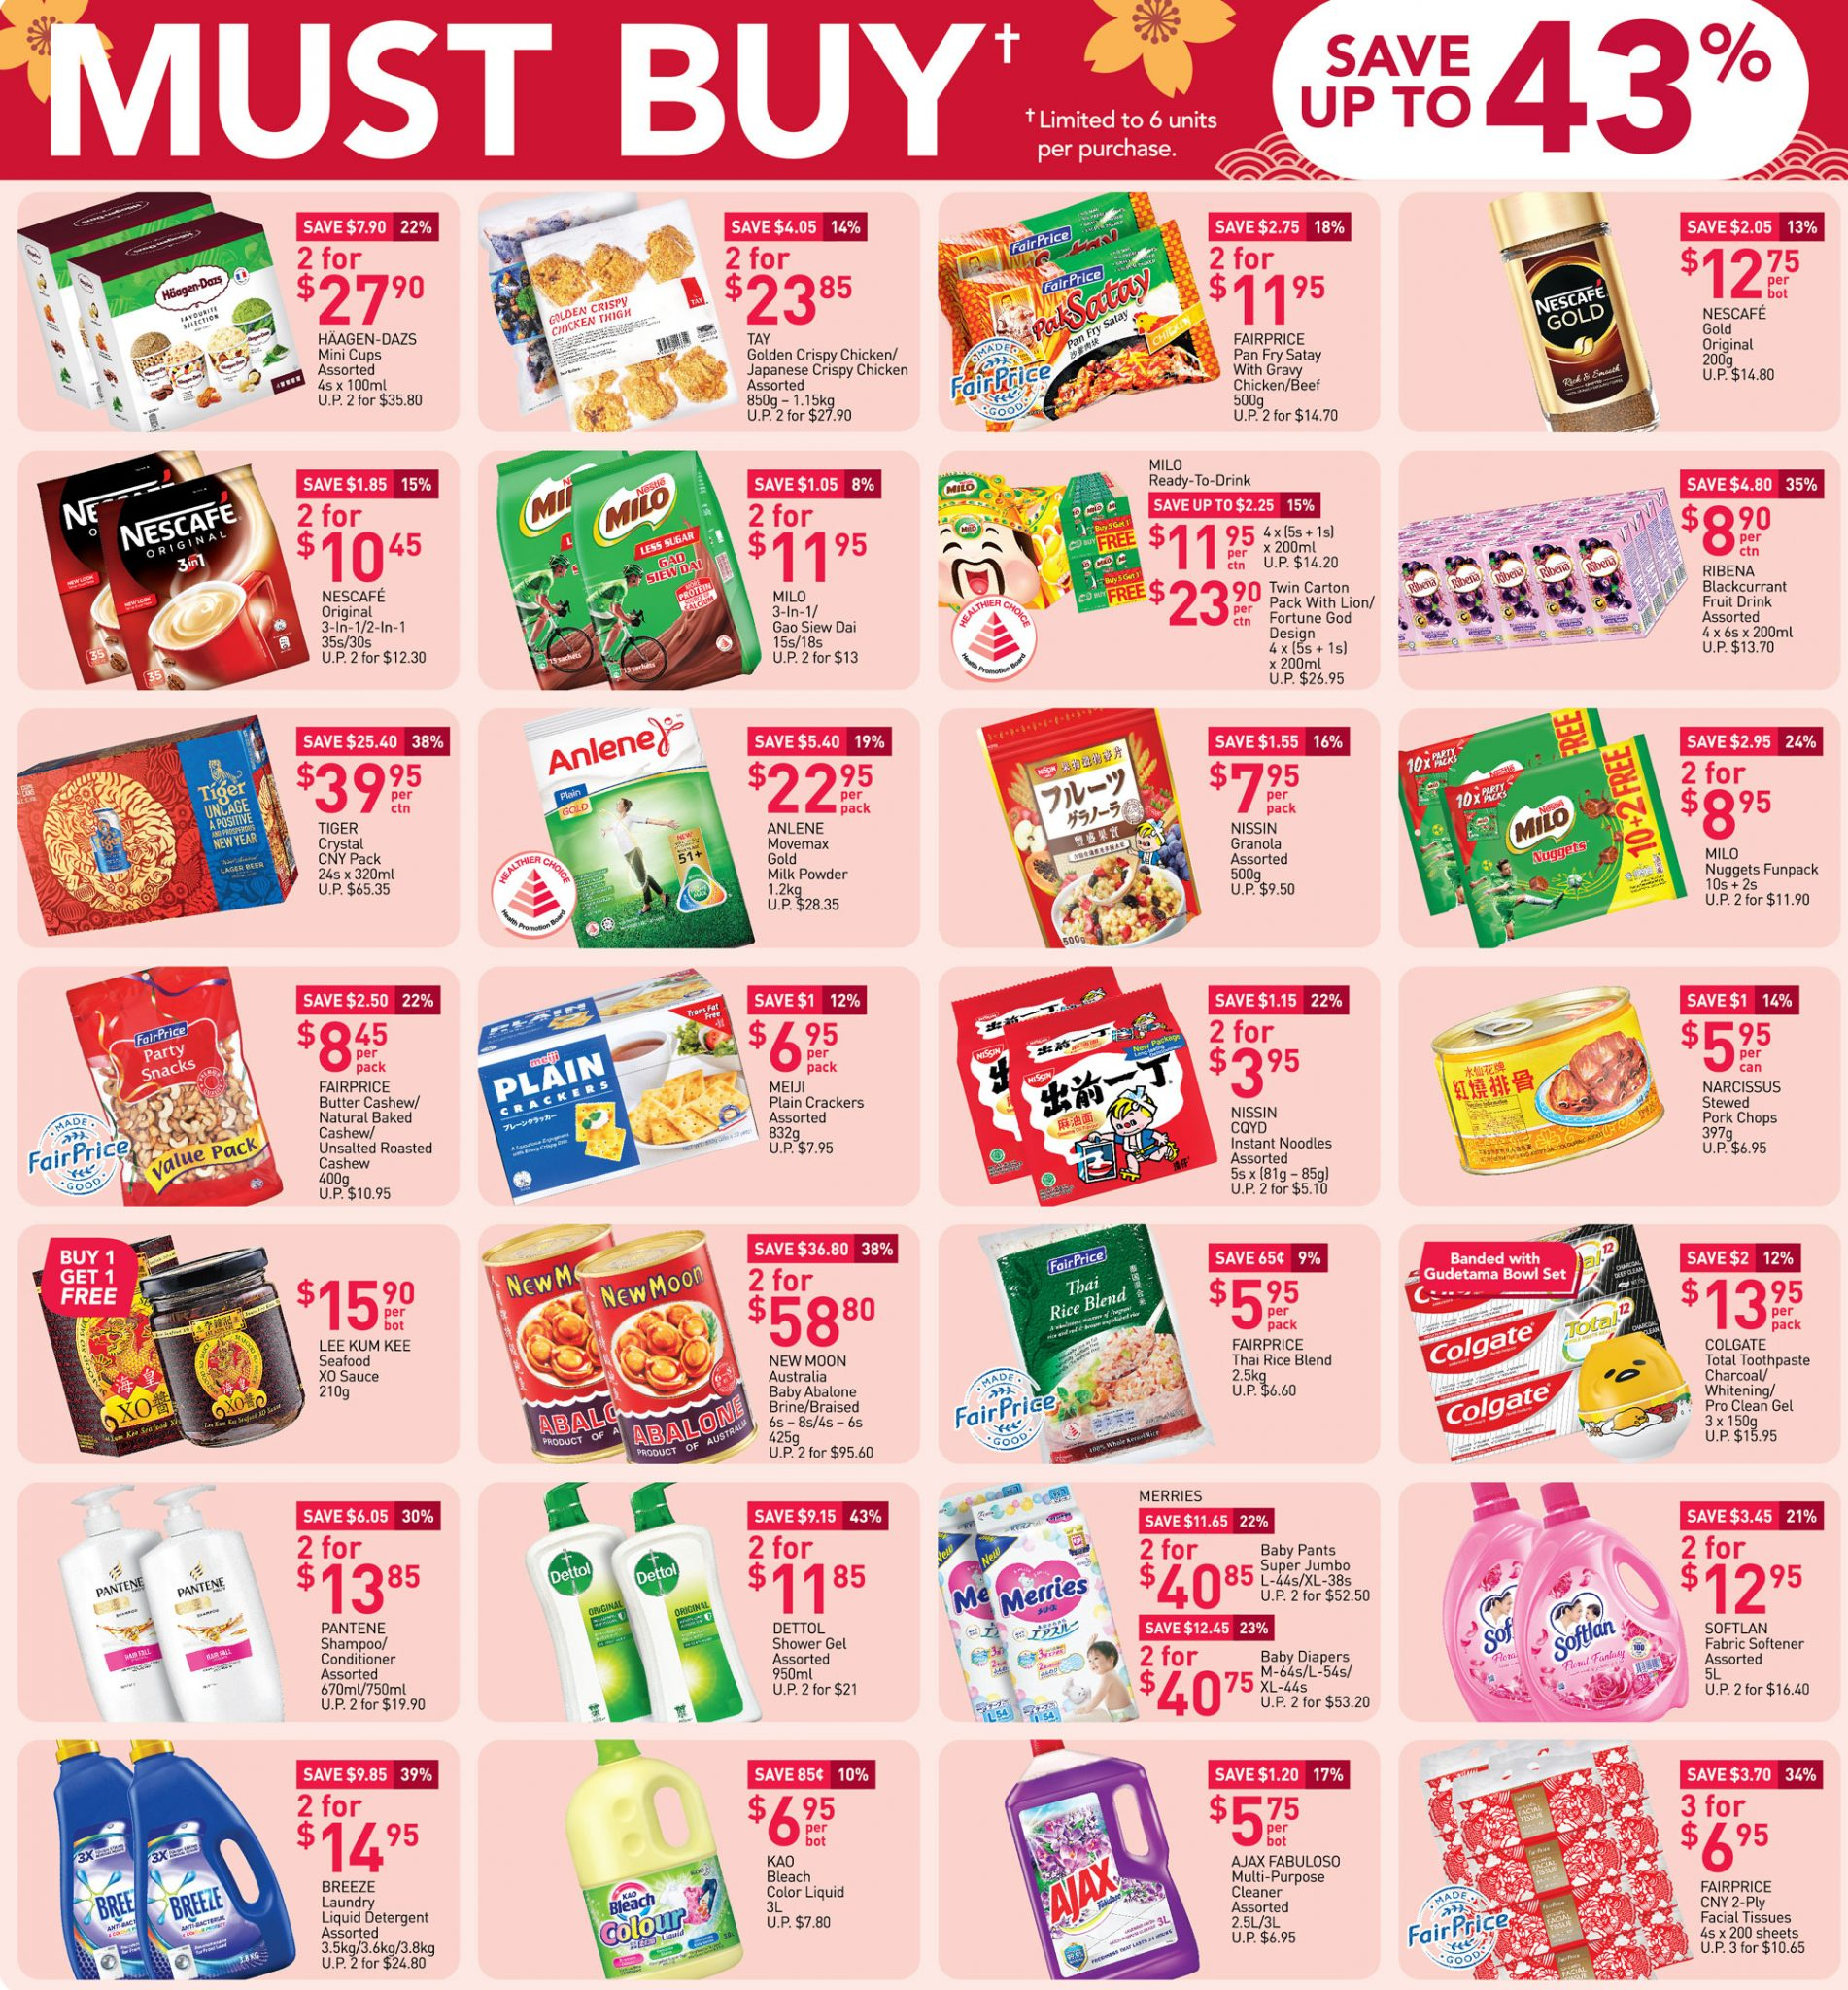 Must-buy items from now till 20 January 2021